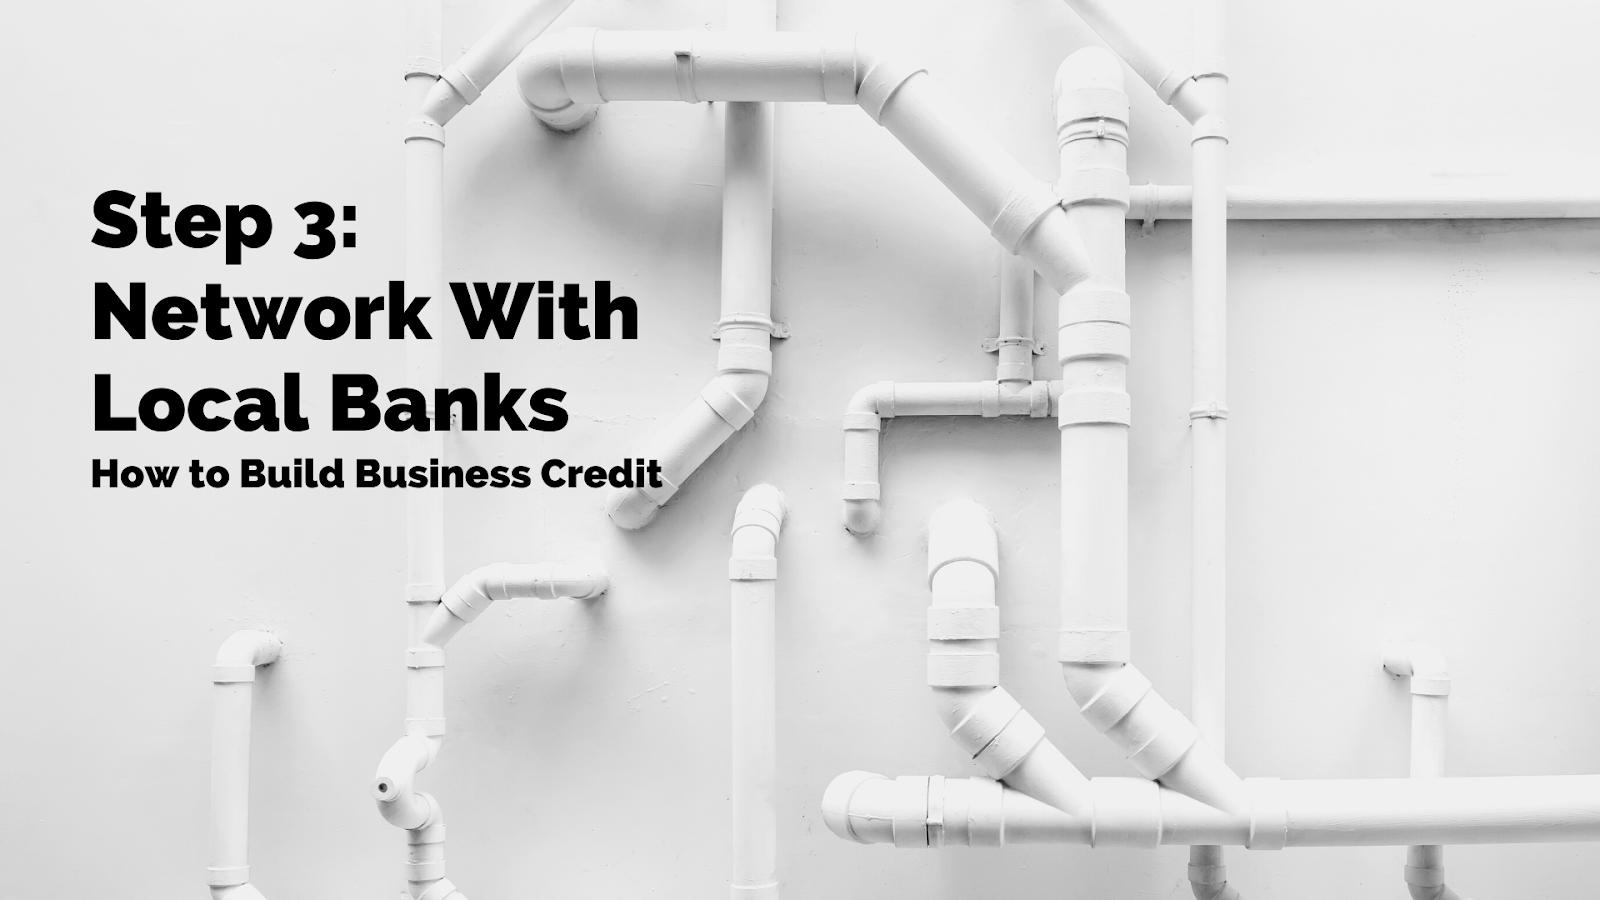 3. Network With Local Banks